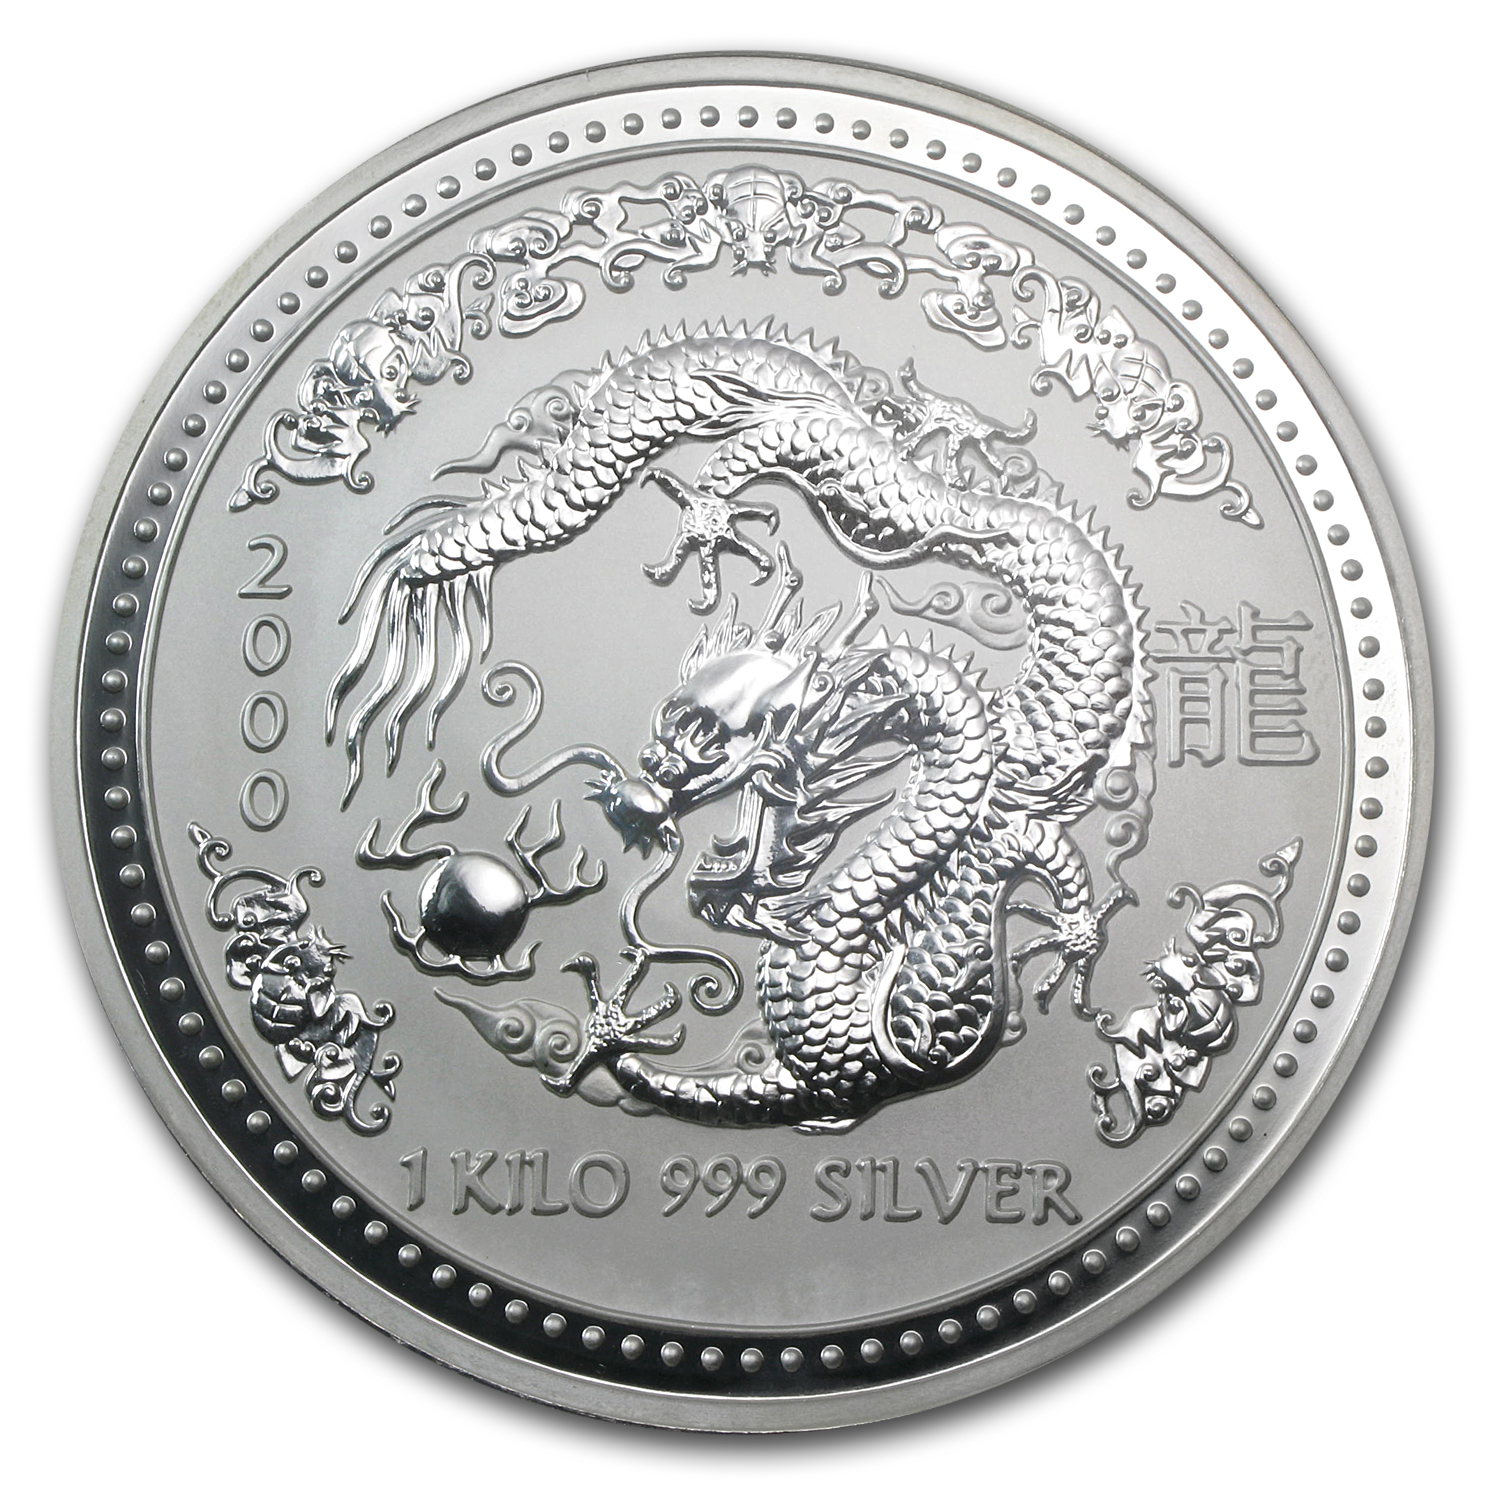 2000 Australia 1 kilo Silver Year of the Dragon MS-67 NGC